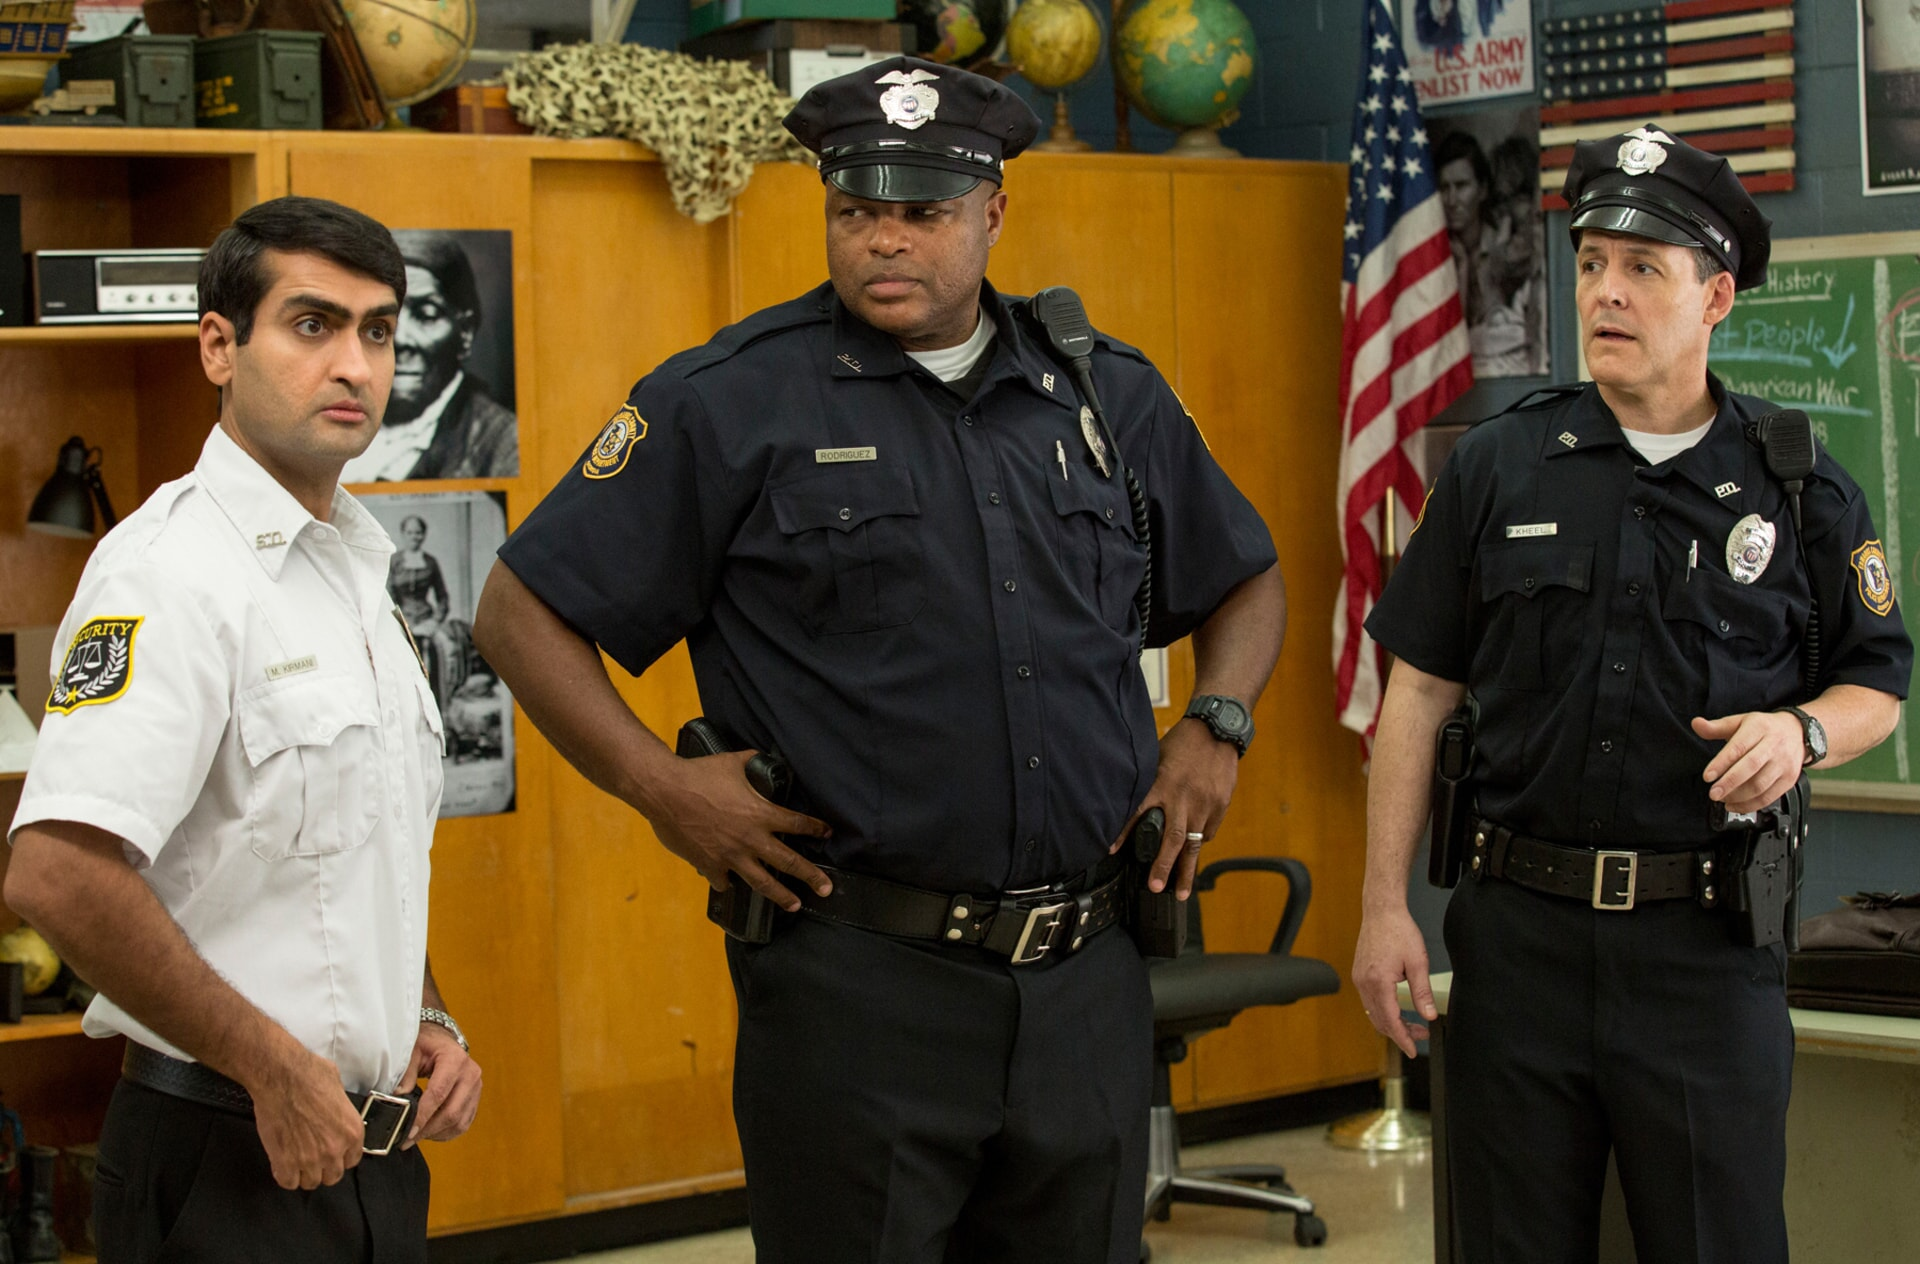 """KUMAIL NANJIANI as Mehar, MICHAEL BEASLEY as Officer Rodriguez and ROBERT PRALGO as Officer Kheel in the New Line Cinema and Village Roadshow Pictures comedy """"FIST FIGHT,"""" a Warner Bros. Pictures release."""